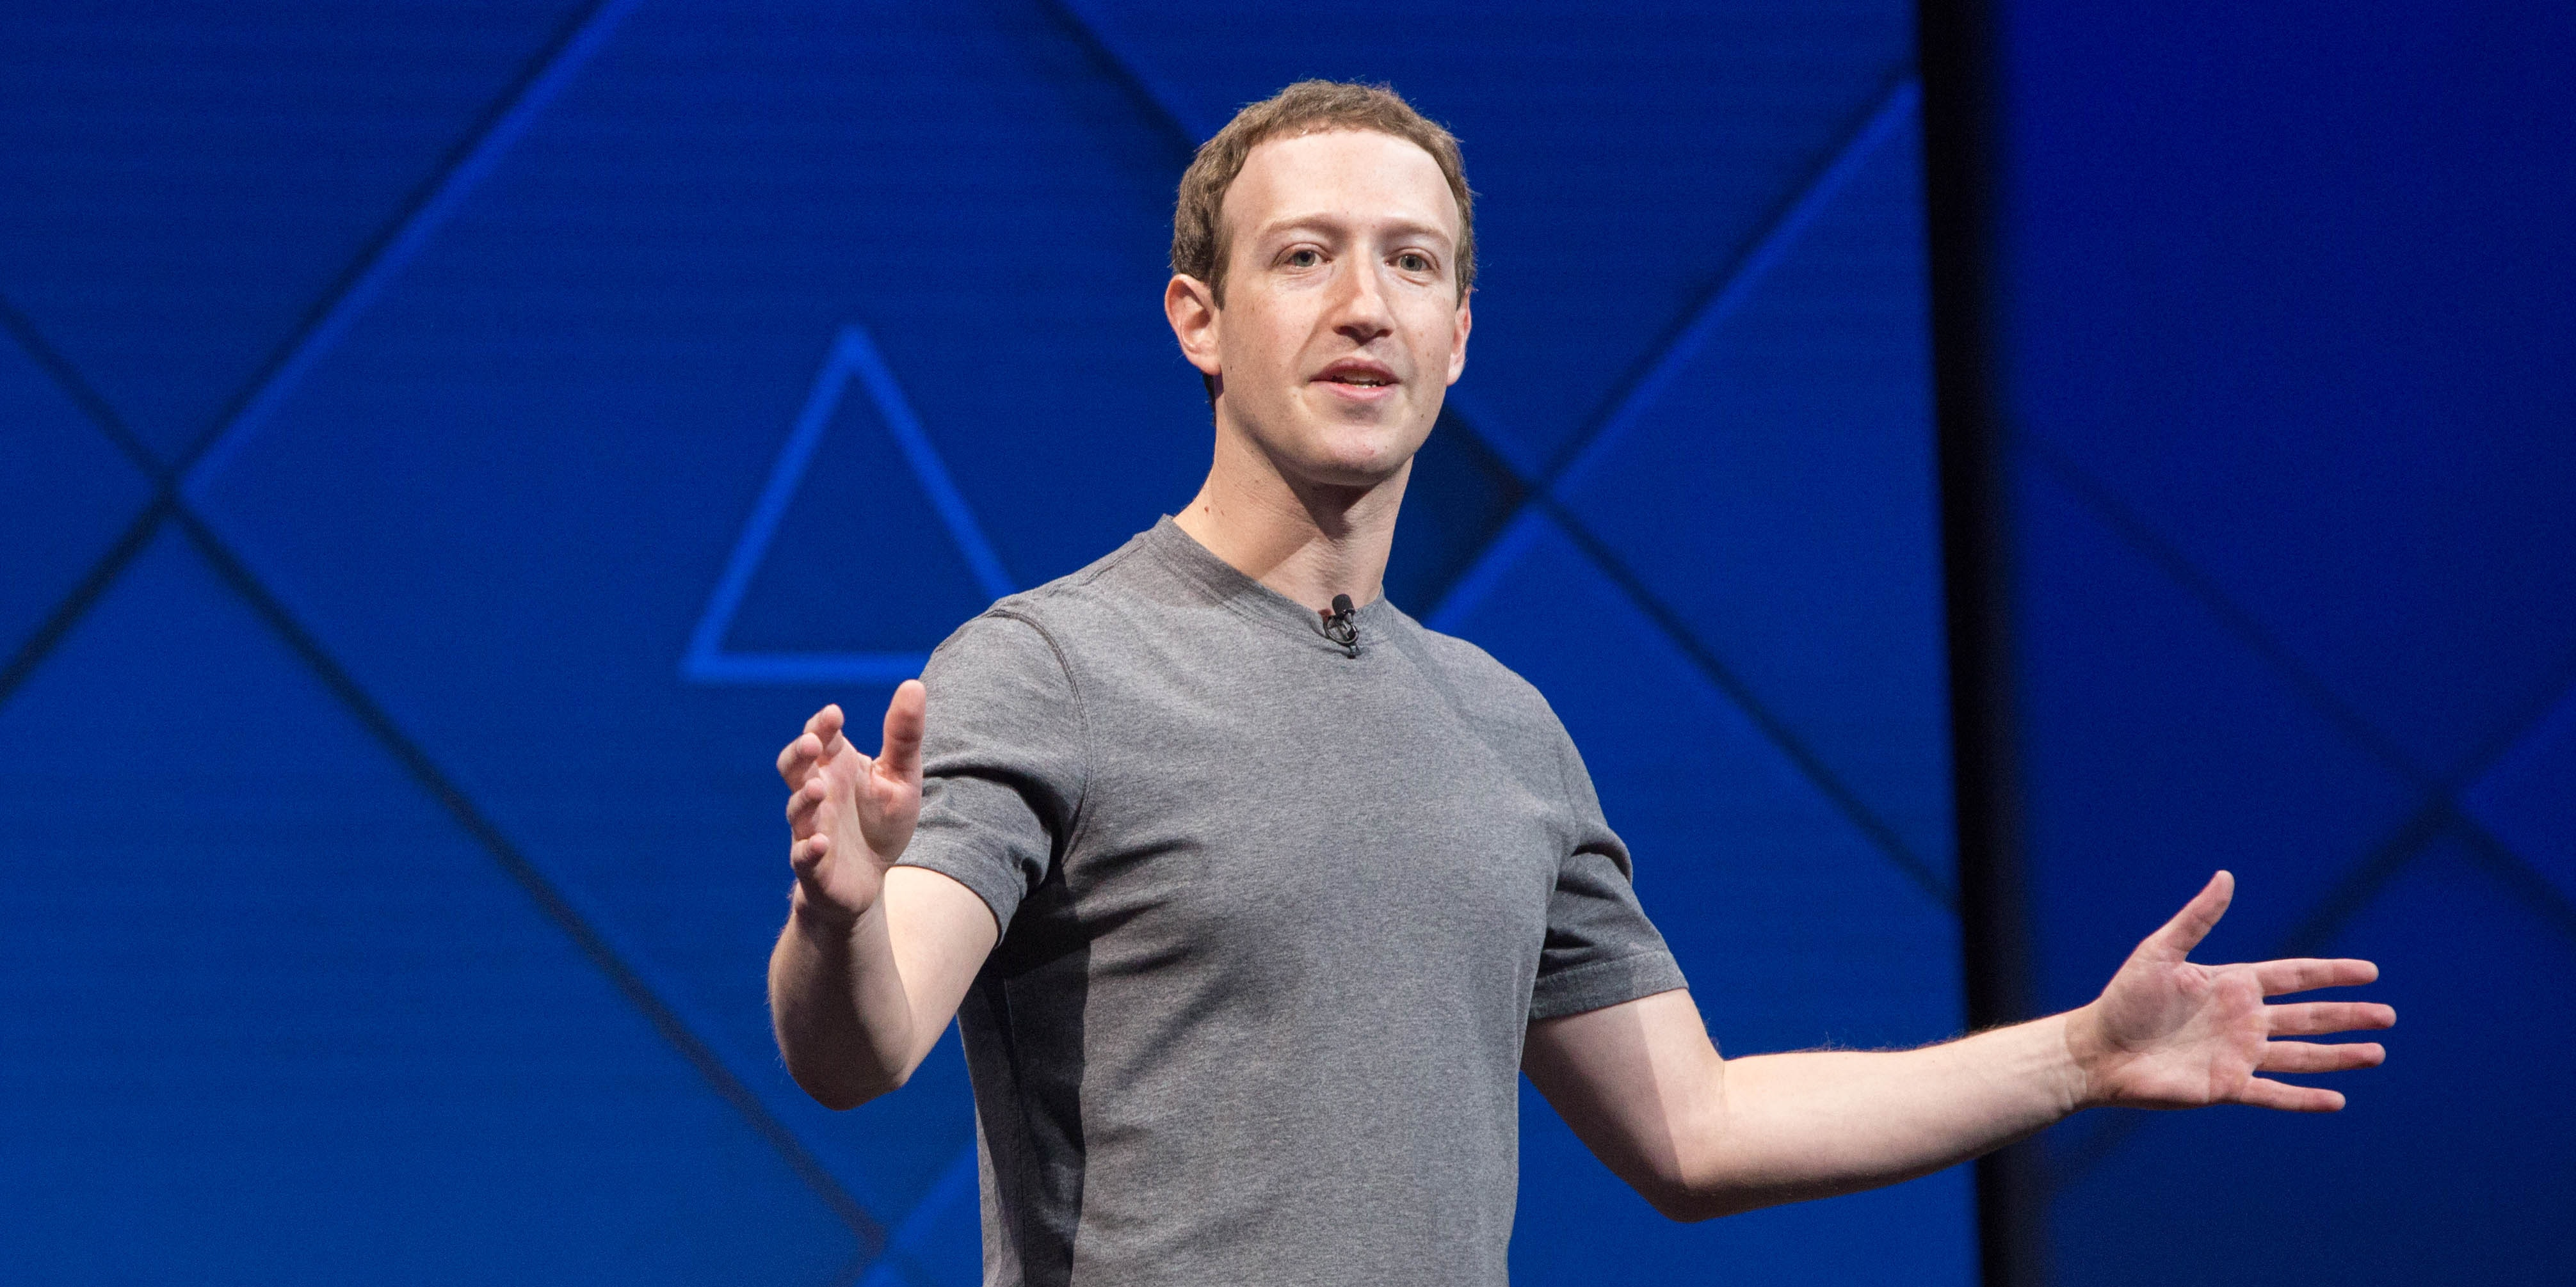 Responding to Backlash, Facebook Will Allow All Users to Unsend Messages